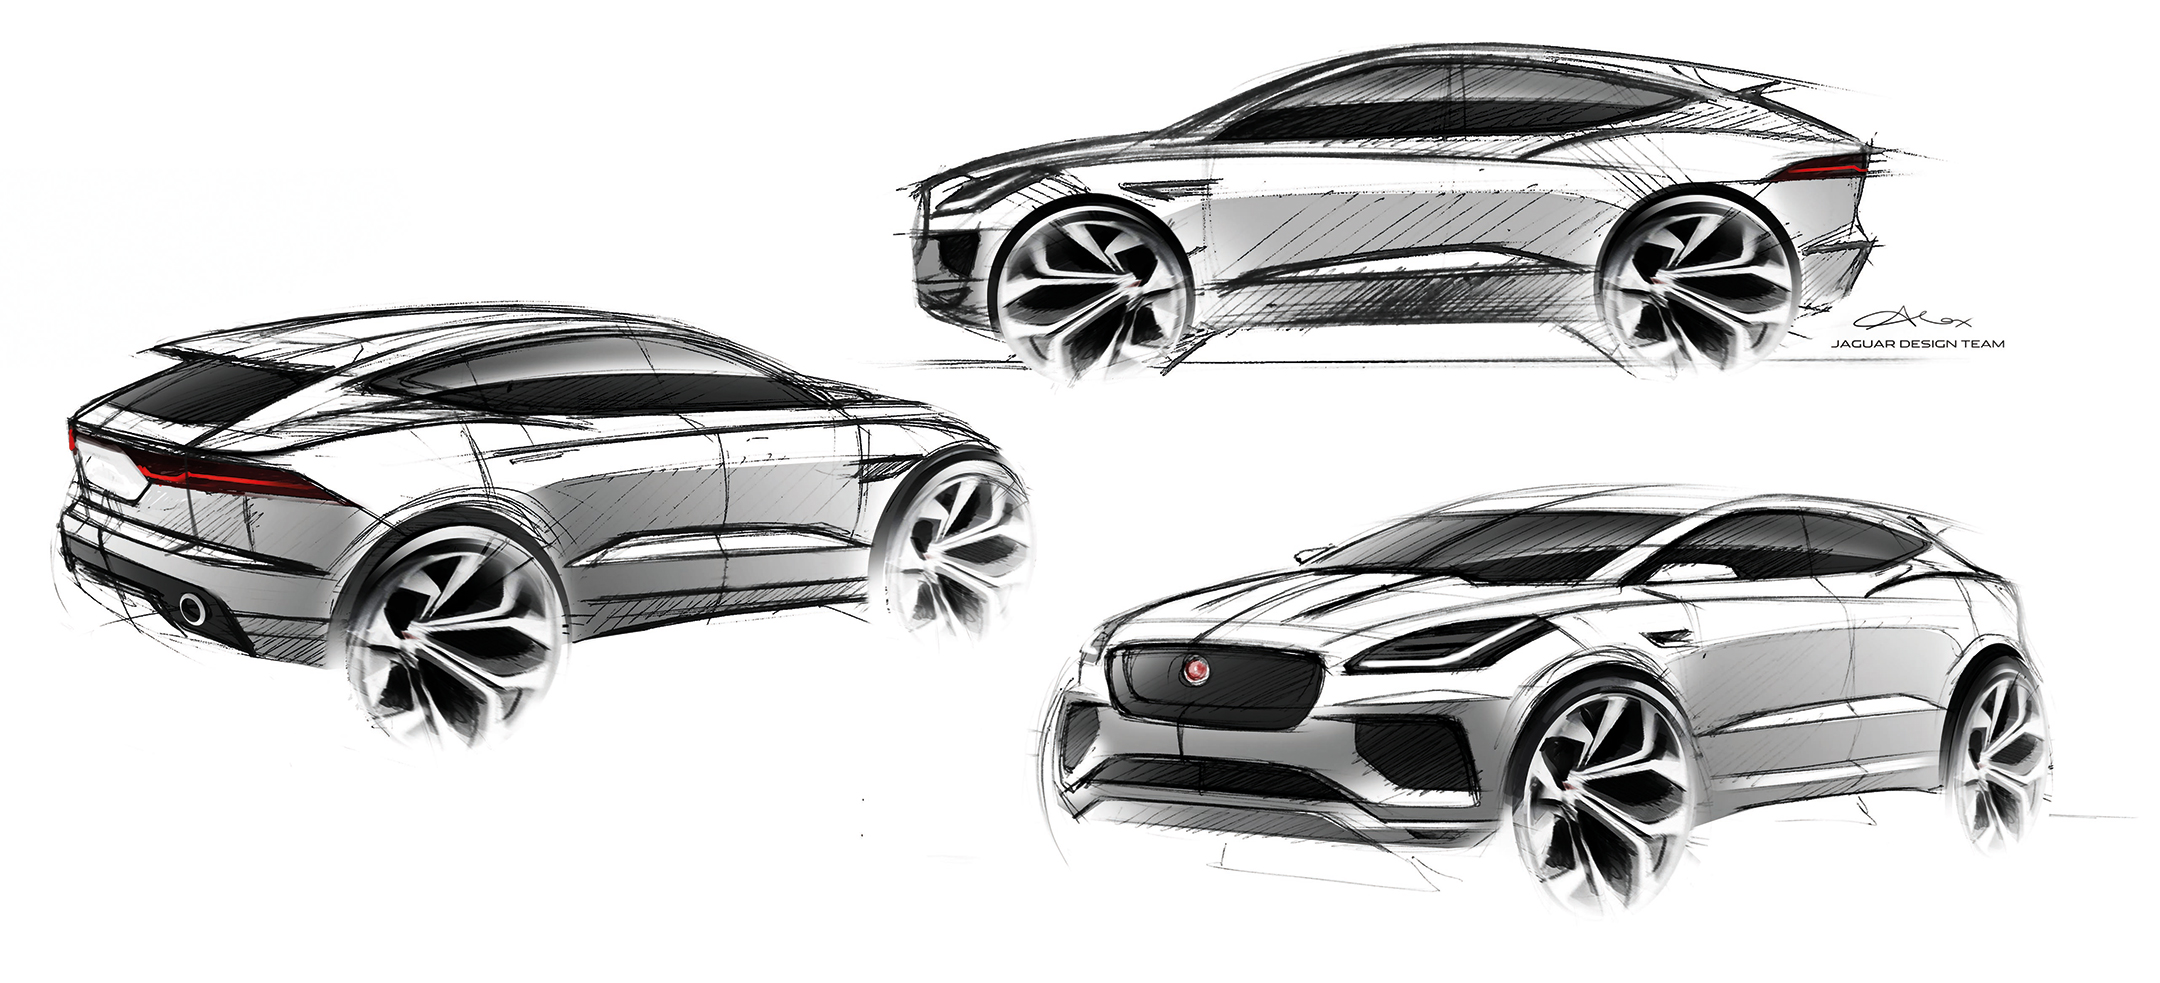 Jaguar E-PACE - 2017 - sketch design